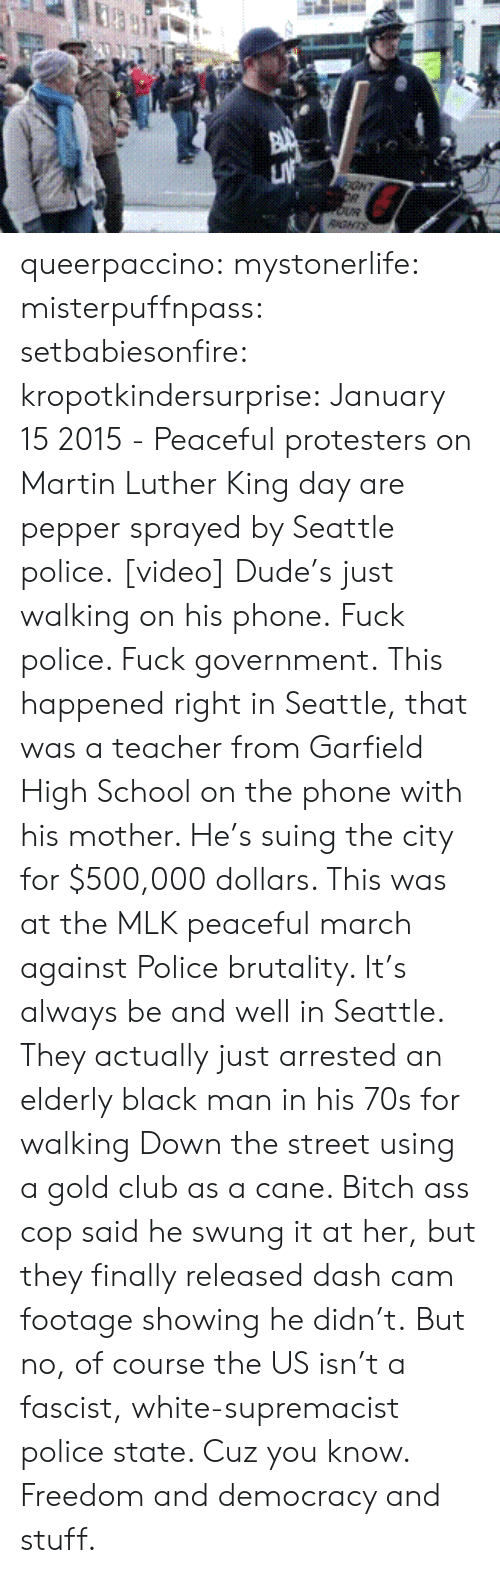 Ass, Bitch, and Club: GHT  RGNTS queerpaccino: mystonerlife:  misterpuffnpass:  setbabiesonfire:  kropotkindersurprise: January 152015 - Peaceful protesters on Martin Luther King day are pepper sprayed by Seattle police.[video] Dude's just walking on his phone.  Fuck police. Fuck government.  This happened right in Seattle, that was a teacher from Garfield High School on the phone with his mother. He's suing the city for $500,000 dollars. This was at the MLK peaceful march against Police brutality. It's always be and well in Seattle. They actually just arrested an elderly black man in his 70s for walking Down the street using a gold club as a cane. Bitch ass cop said he swung it at her, but they finally released dash cam footage showing he didn't.  But no, of course the US isn't a fascist, white-supremacist police state. Cuz you know. Freedom and democracy and stuff.